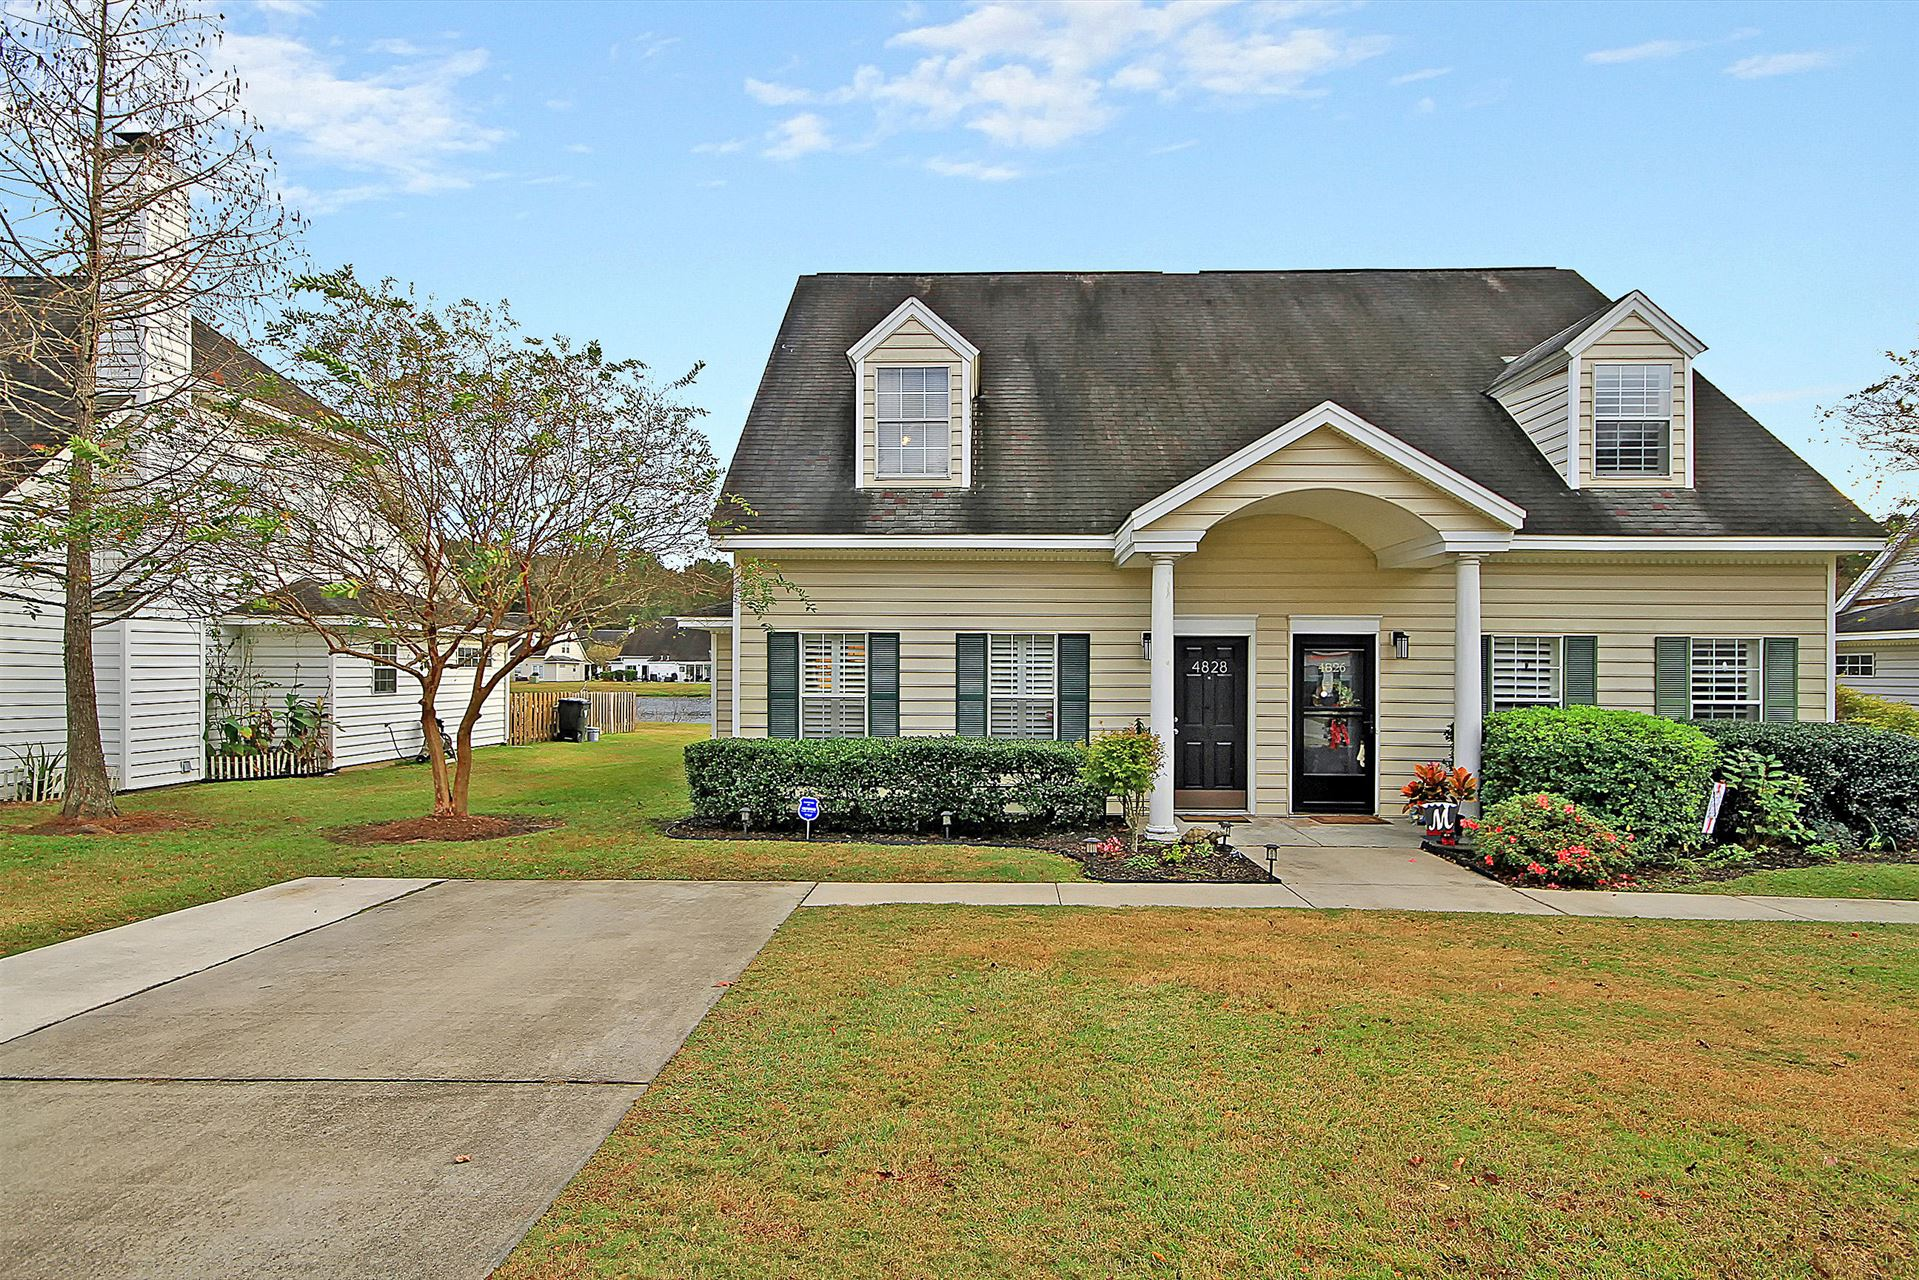 Photo of 4828 Habersham Lane, Summerville, SC 29485 (MLS # 20032108)